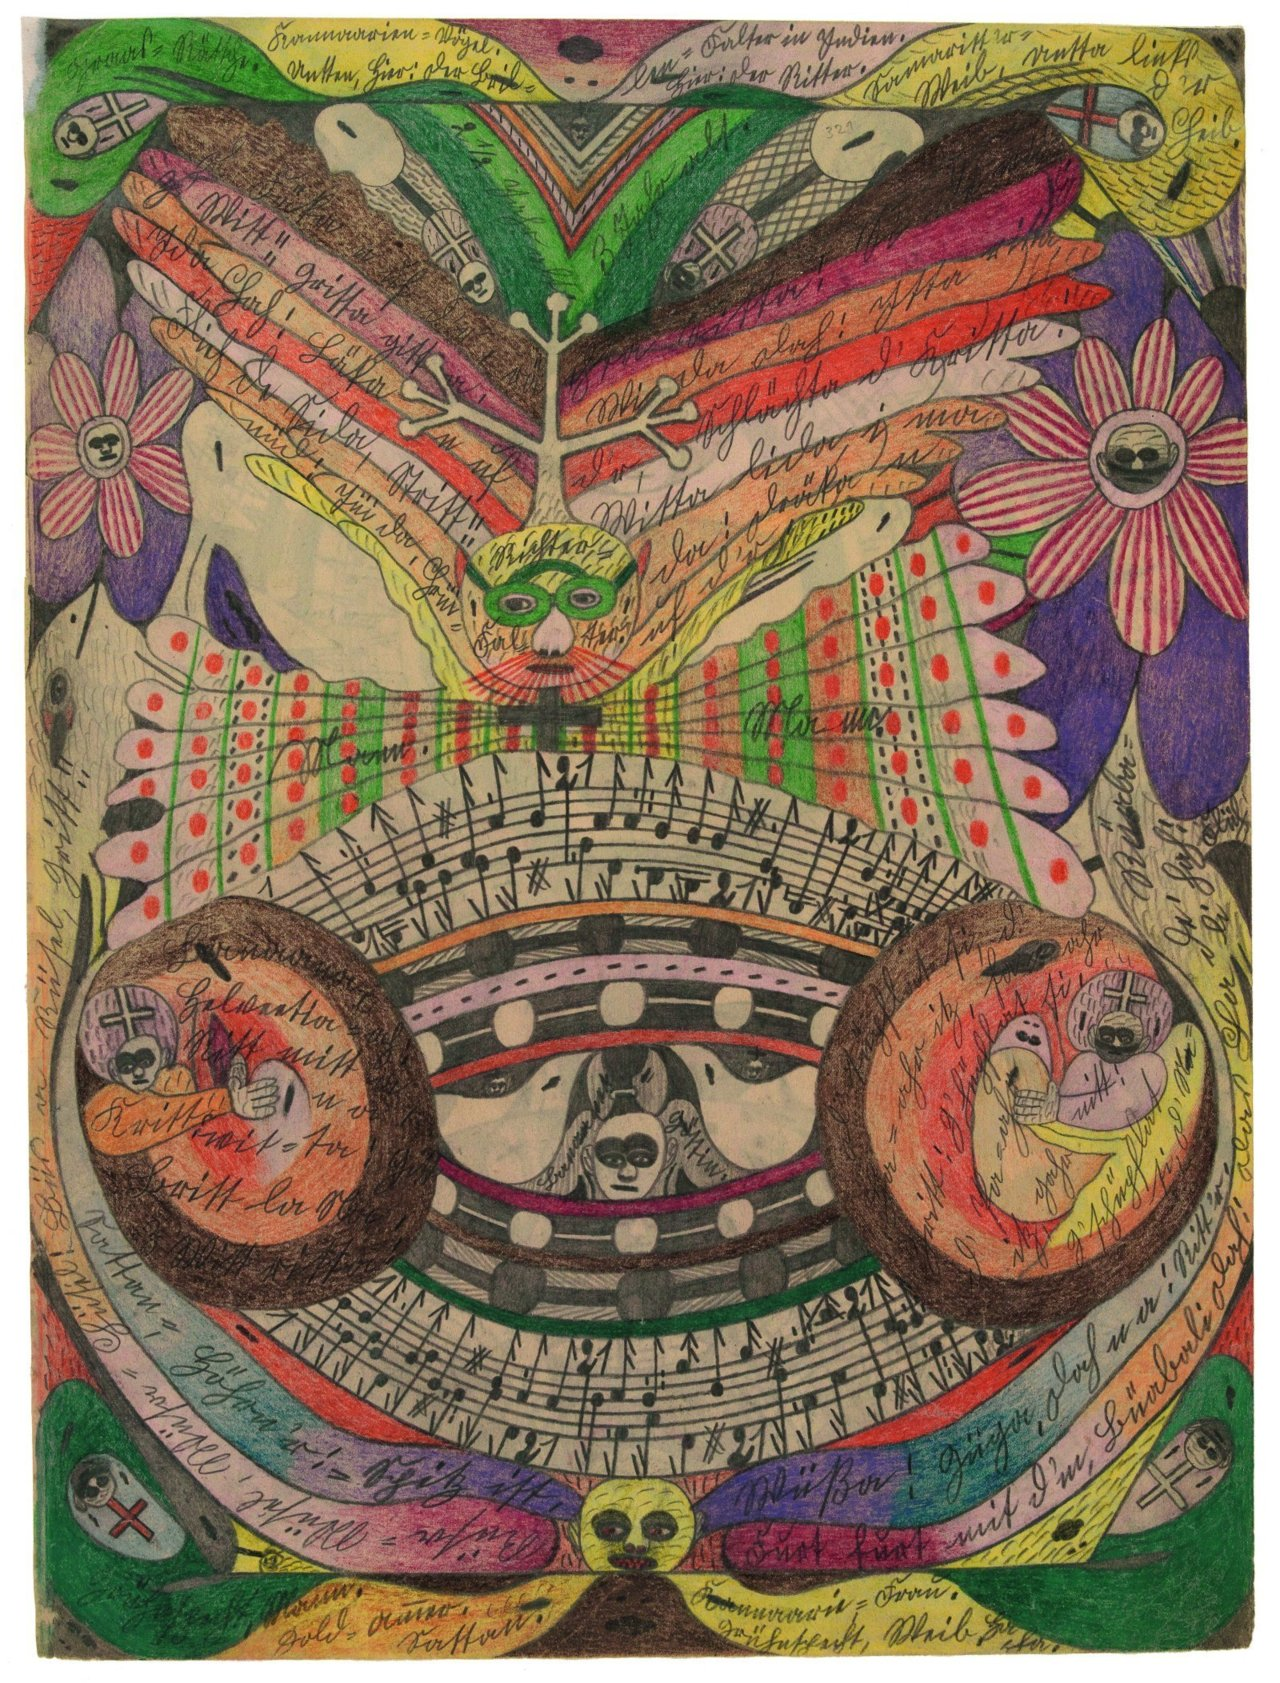 Adolf Wölfli (1864-1930): adolfi_wolfli_illustration_3_20130222_1009044683.jpeg